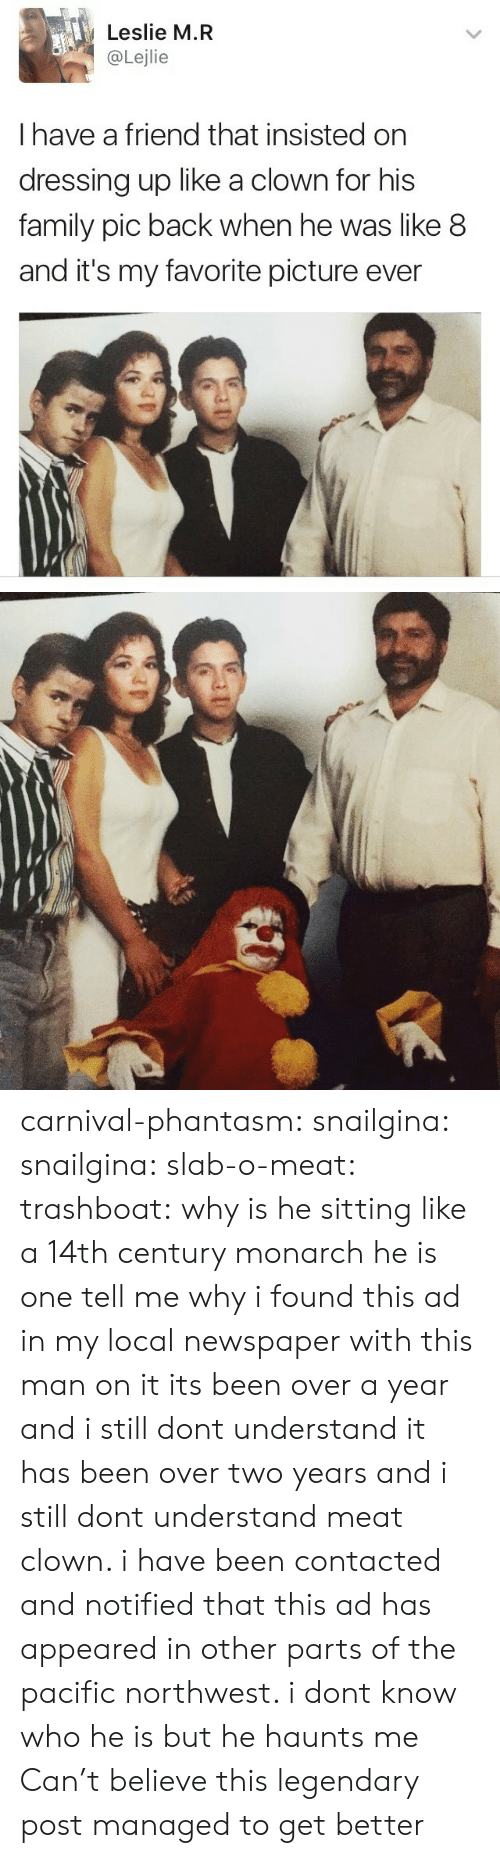 Family, Tumblr, and Blog: Leslie M.R  @Lejlie  I have a friend that insisted on  dressing up like a clown for his  family pic back when he was like 8  and it's my favorite picture ever carnival-phantasm: snailgina:  snailgina:   slab-o-meat:  trashboat: why is he sitting like a 14th century monarch   he is one   tell me why i found this ad in my local newspaper with this man on it its been over a year and i still dont understand   it has been over two years and i still dont understand meat clown. i have been contacted and notified that this ad has appeared in other parts of the pacific northwest. i dont know who he is but he haunts me   Can't believe this legendary post managed to get better